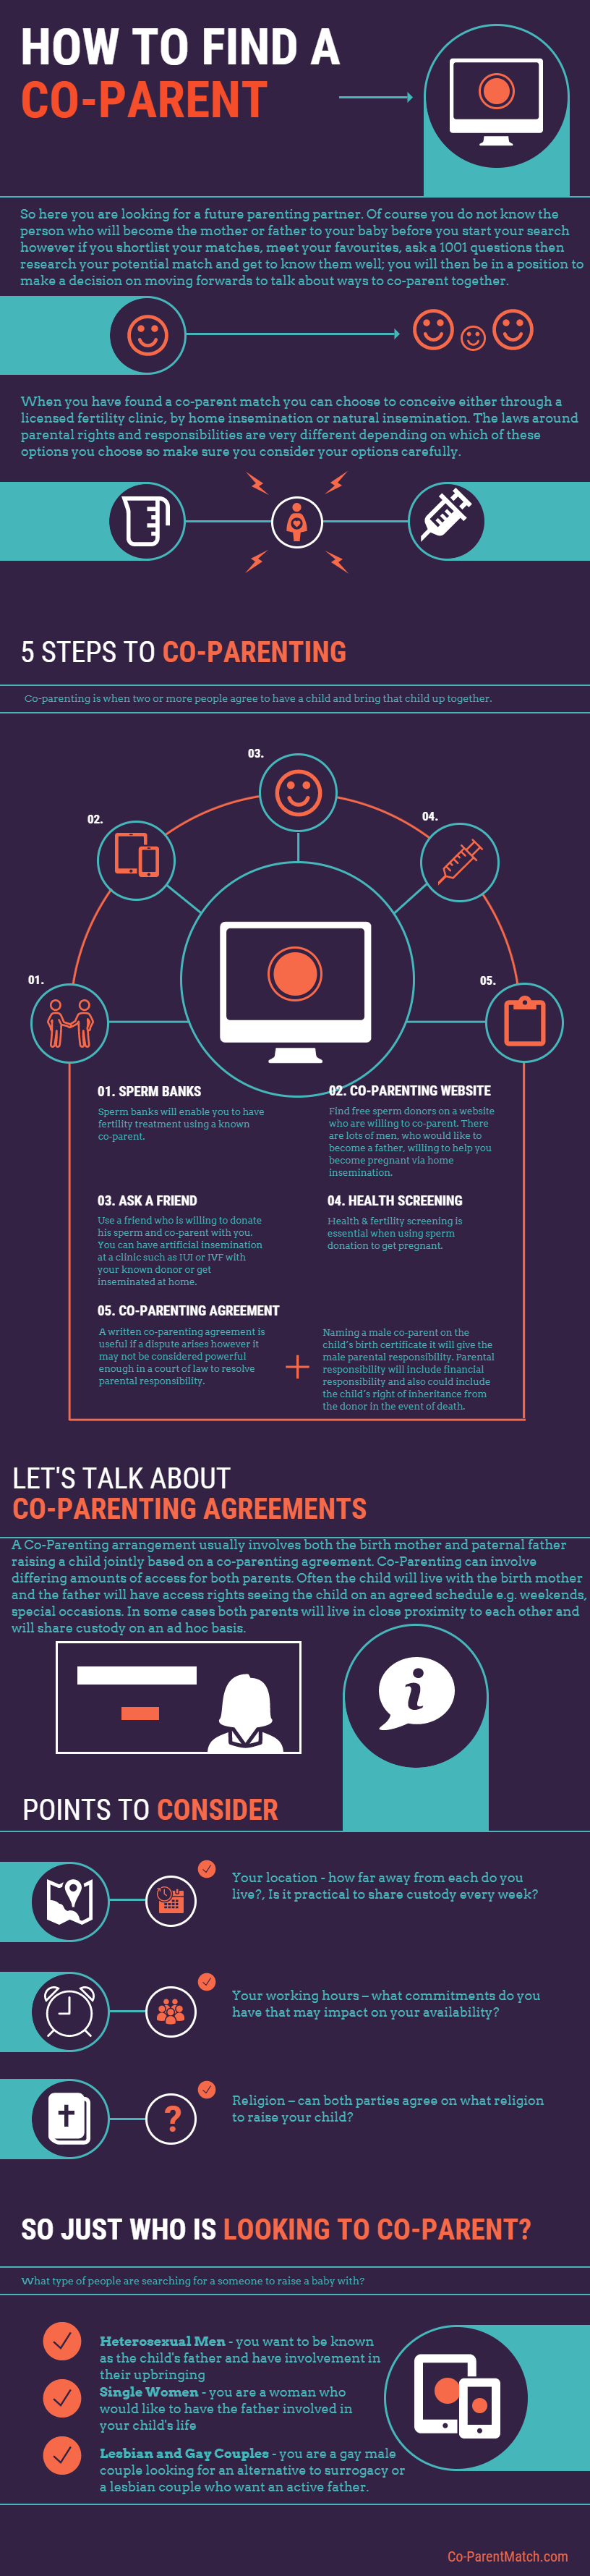 How to find a co-parent